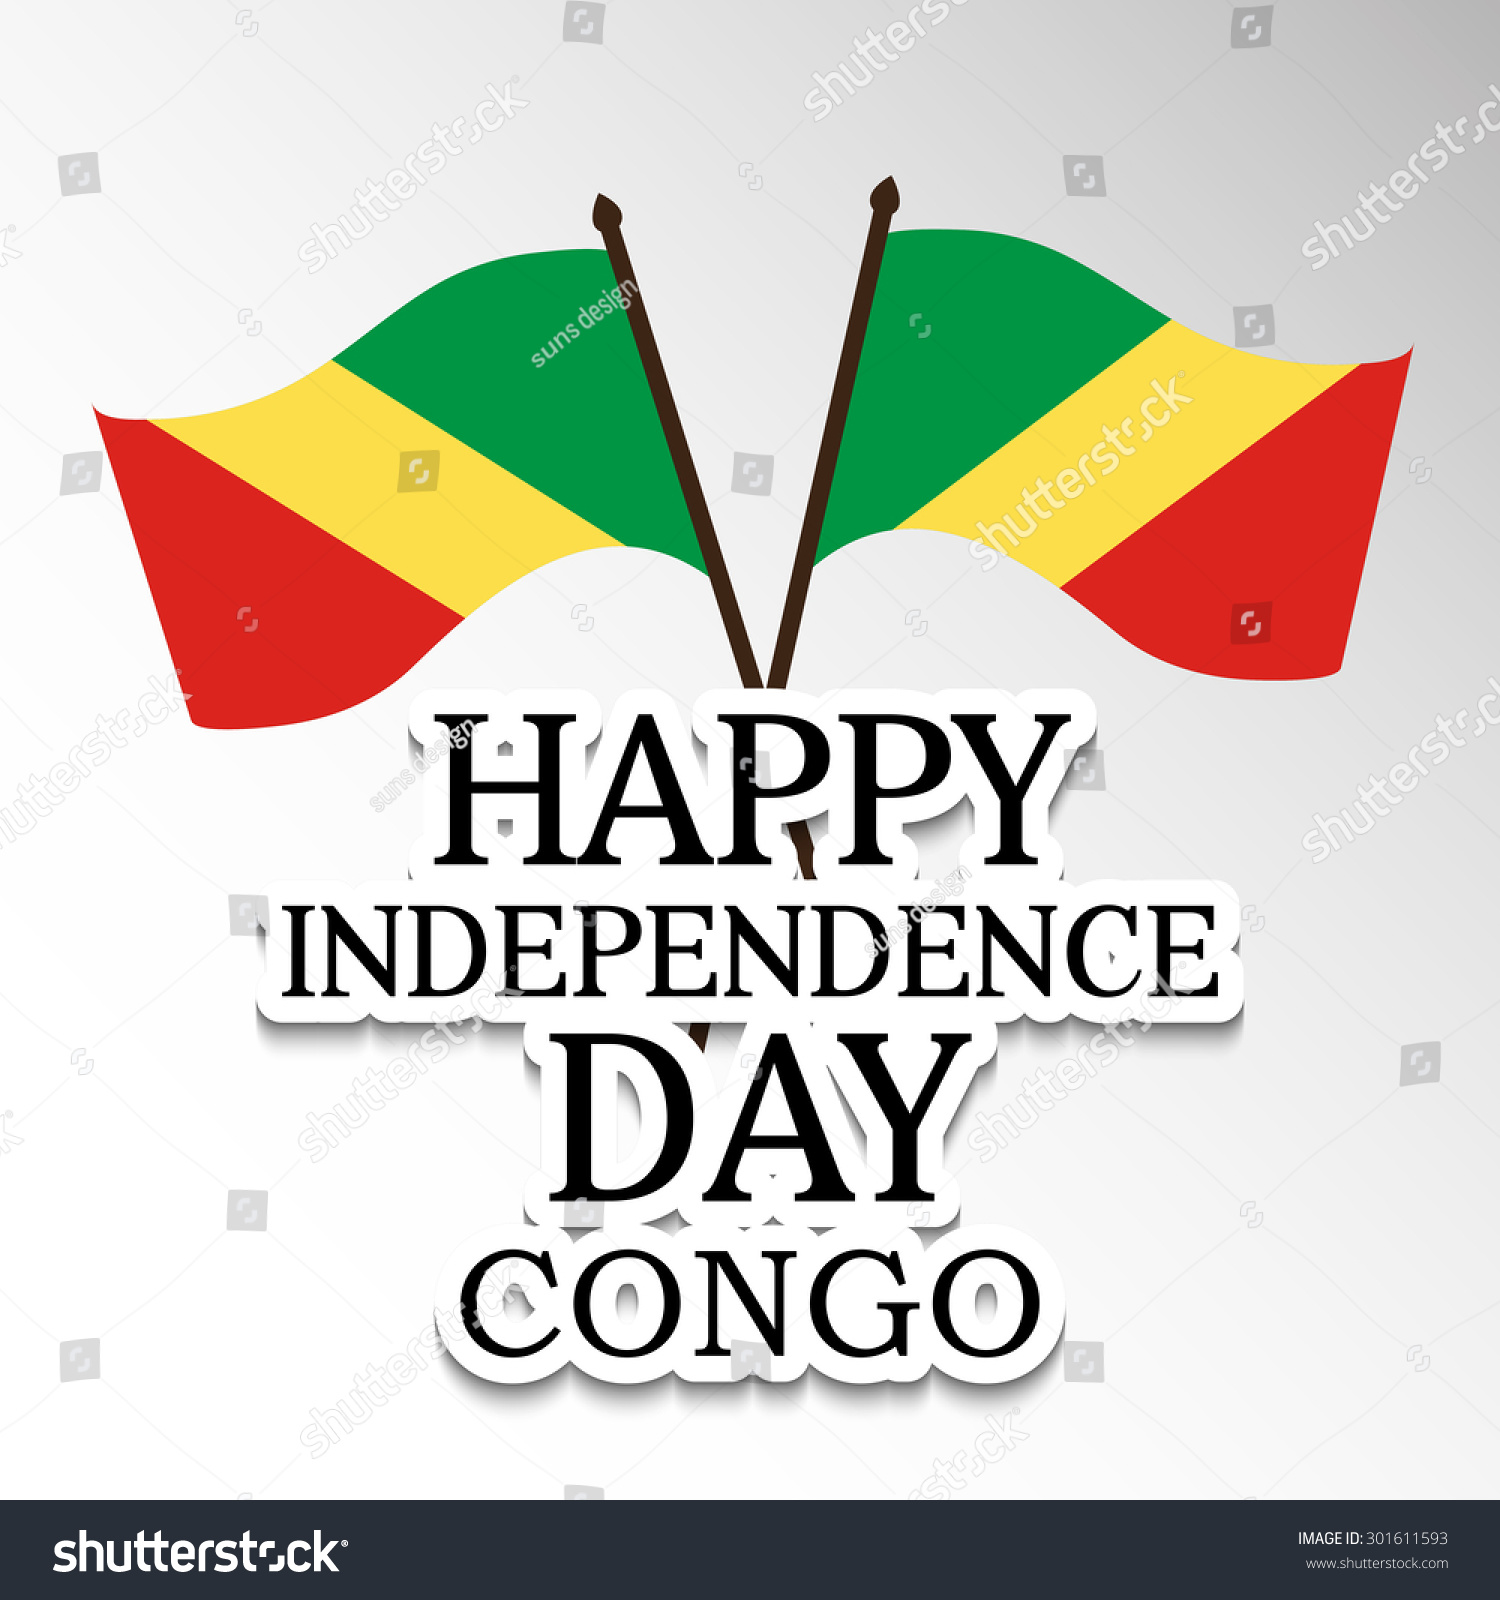 Vector Illustration Flag Stylish Text Congo Stock Vector - Congo independence day